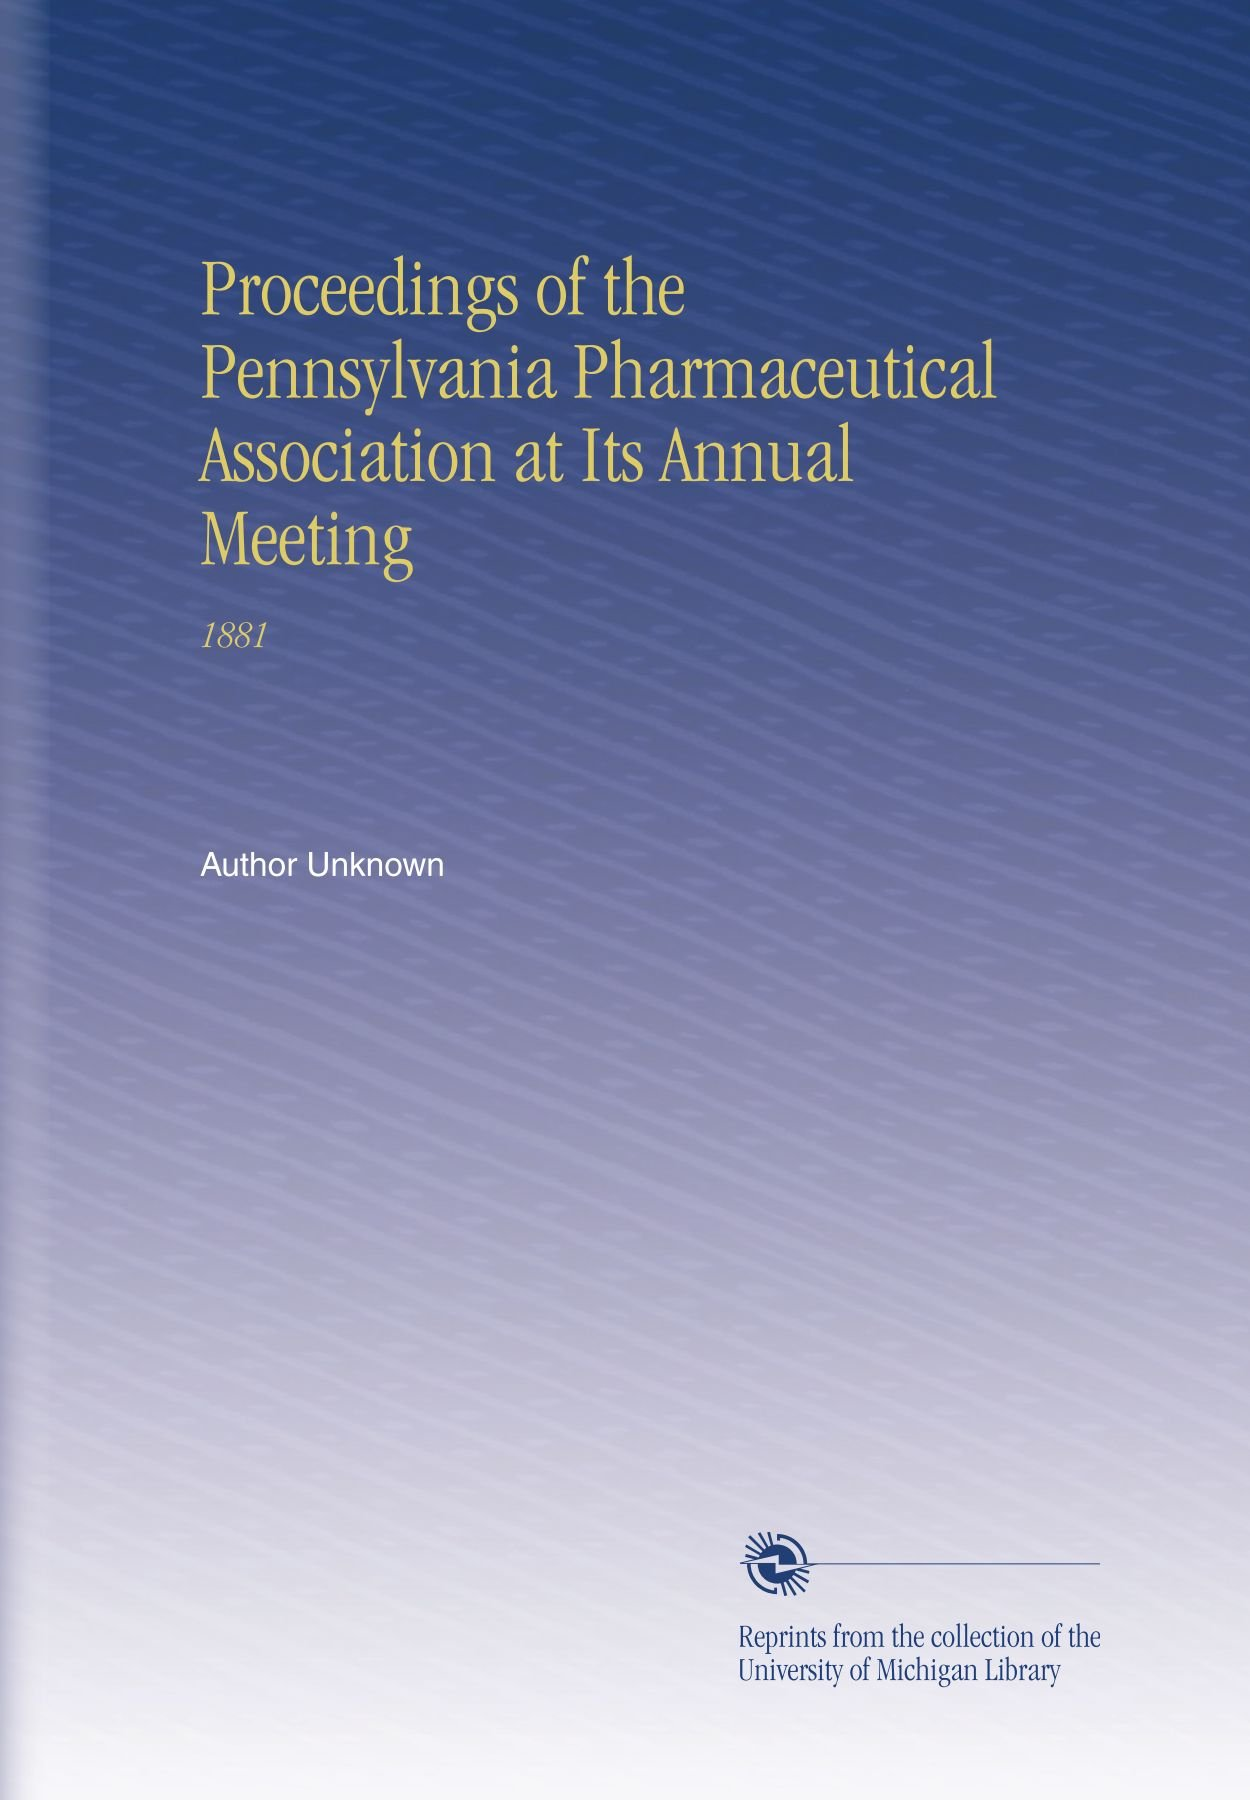 Download Proceedings of the Pennsylvania Pharmaceutical Association at Its Annual Meeting: 1881 PDF